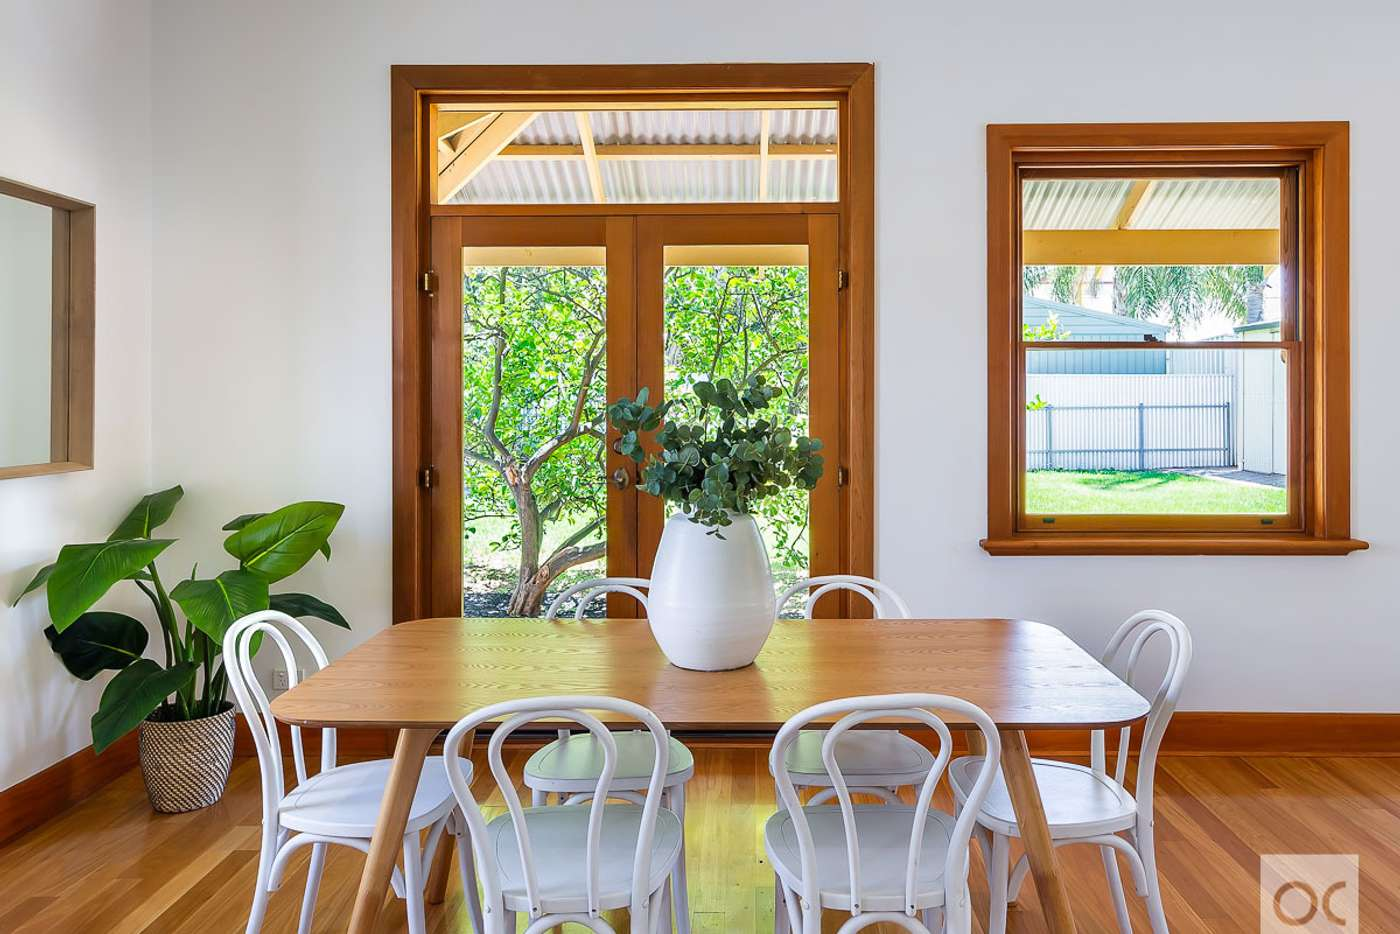 Sixth view of Homely house listing, 4 Richmond Avenue, Colonel Light Gardens SA 5041